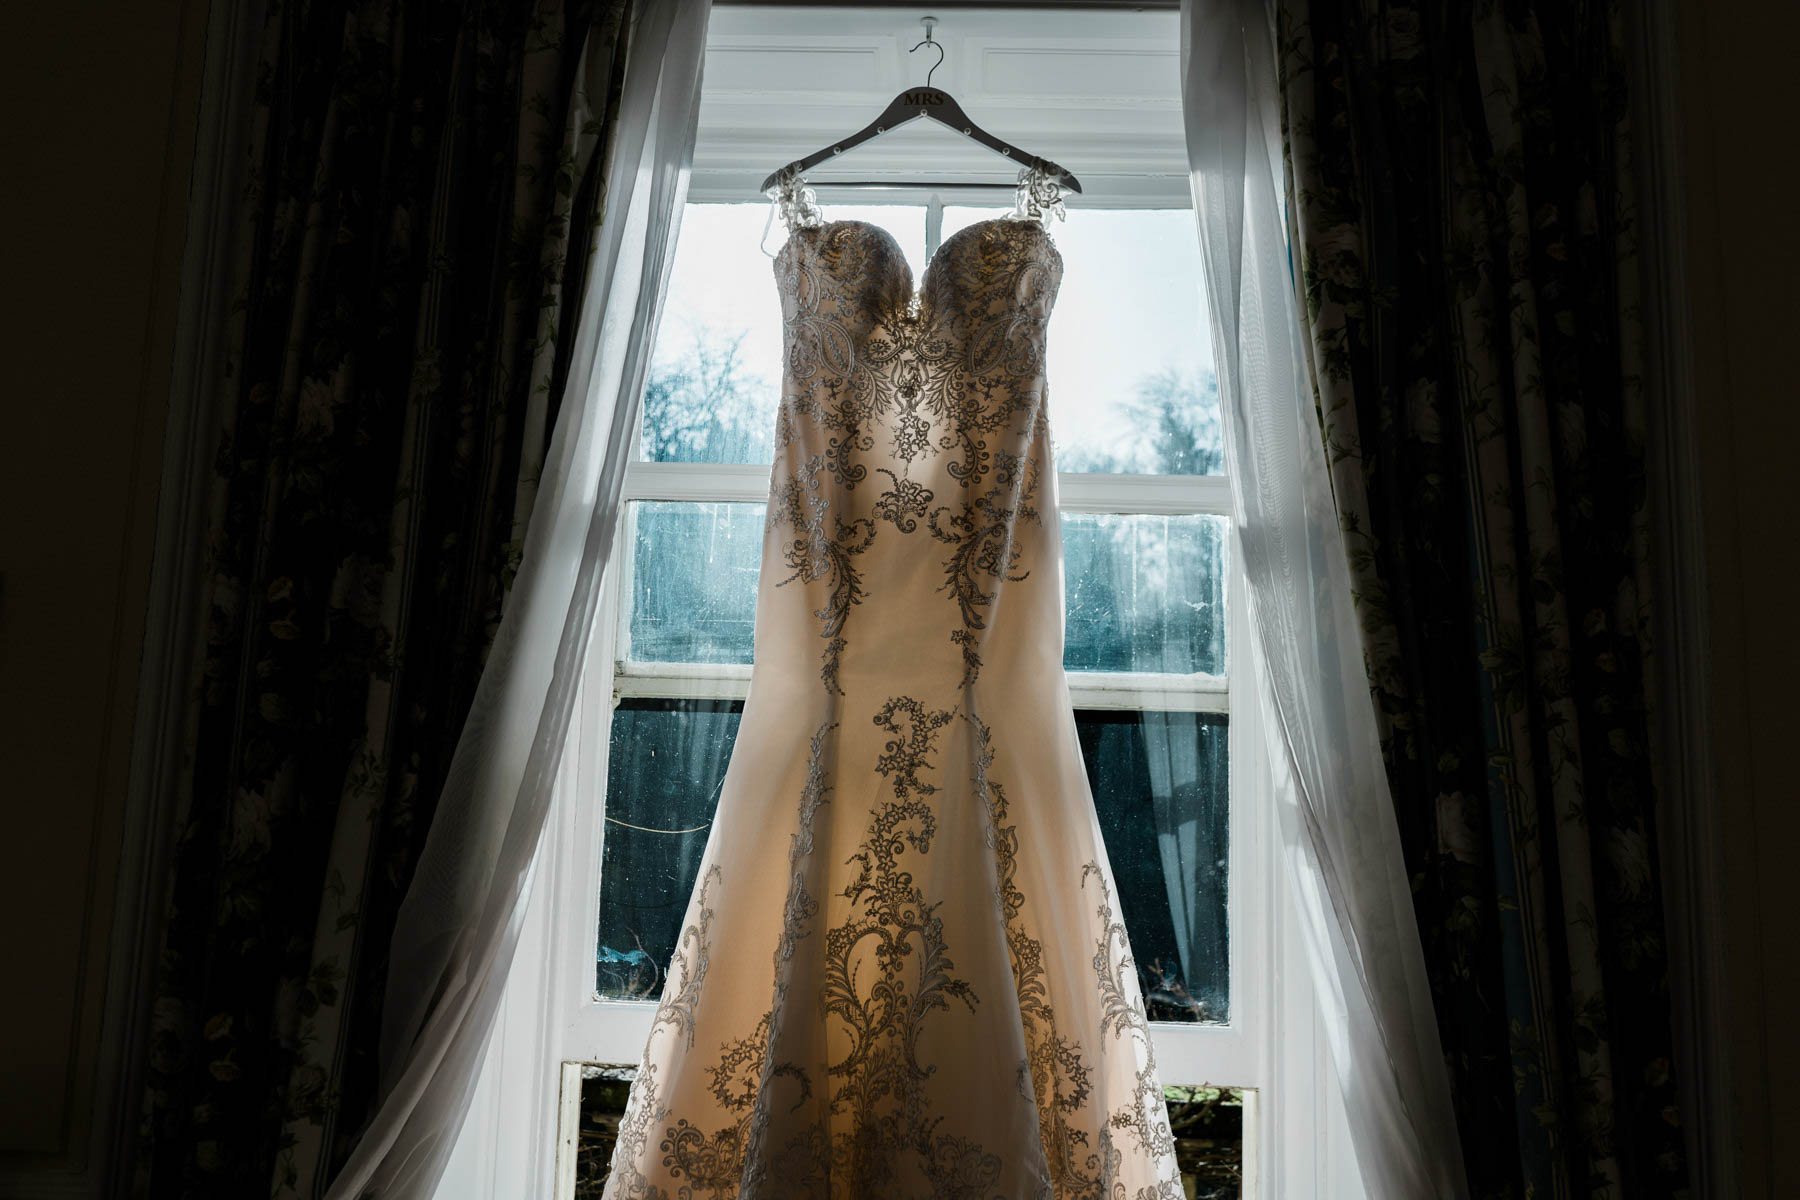 Eshott Hall Wedding Photographer | wedding dress hanging in window